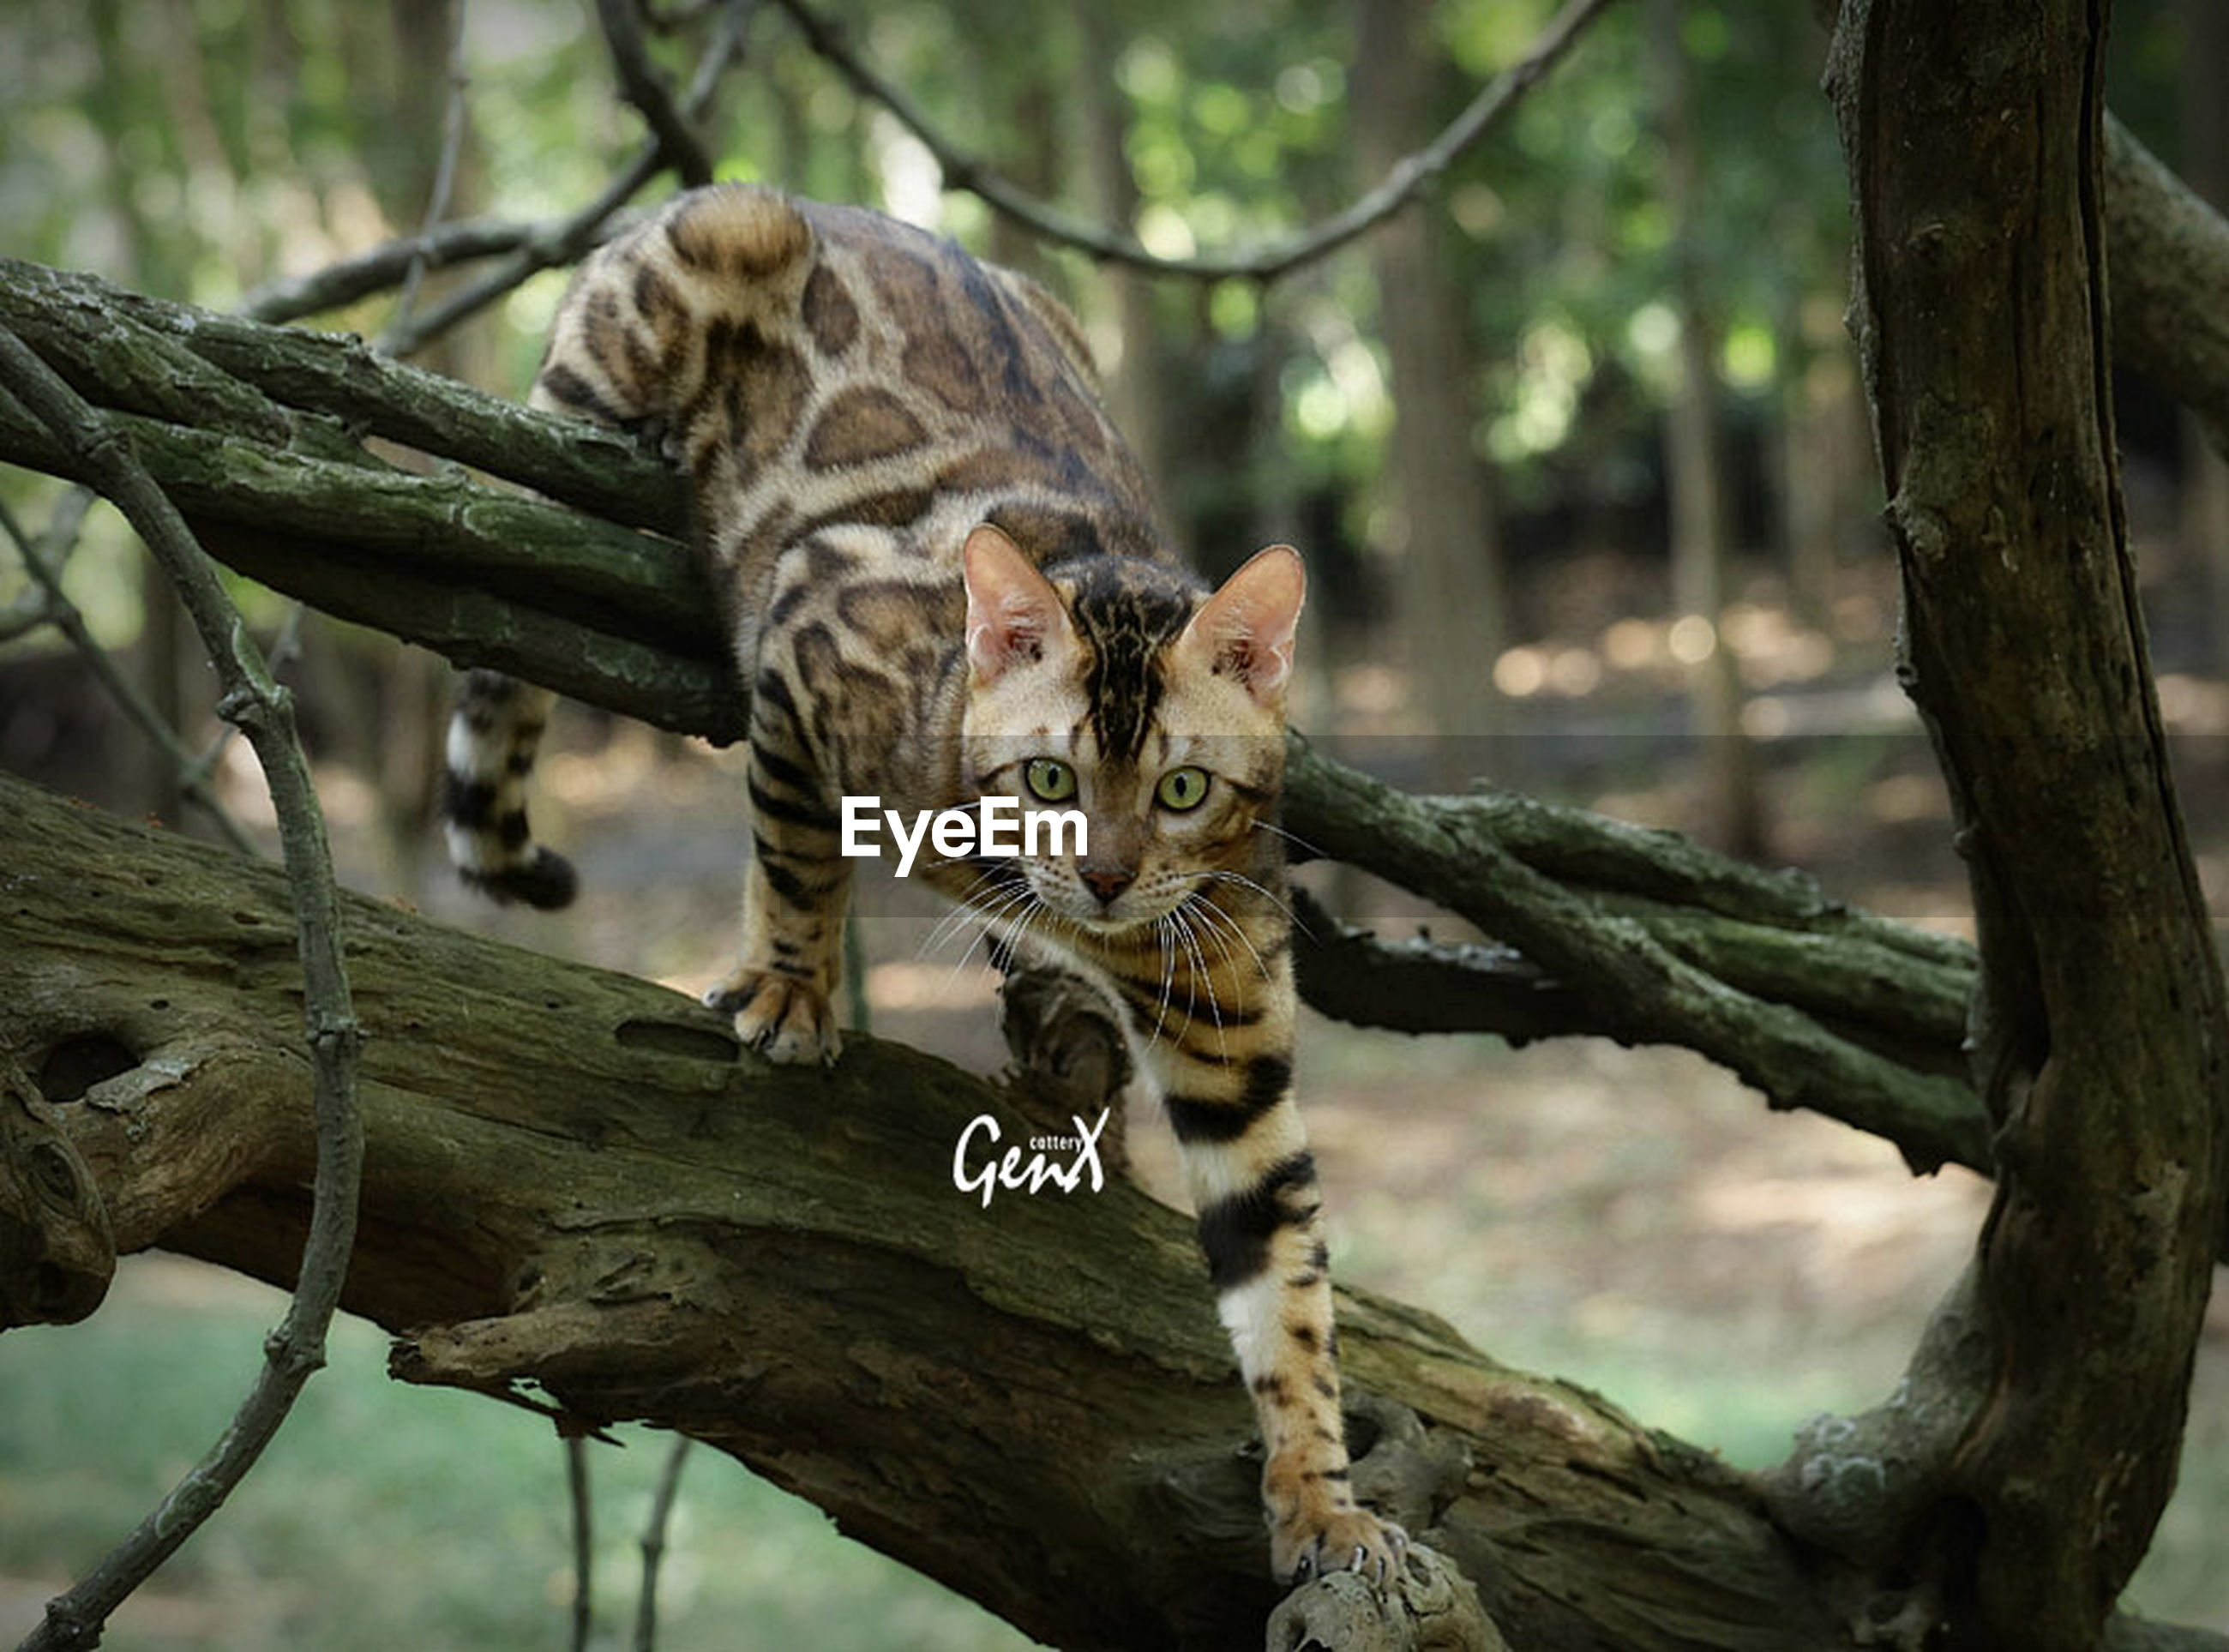 animal themes, animals in the wild, one animal, wildlife, mammal, tree, branch, tree trunk, forest, focus on foreground, nature, vertebrate, full length, zoo, day, outdoors, no people, looking at camera, zoology, wood - material